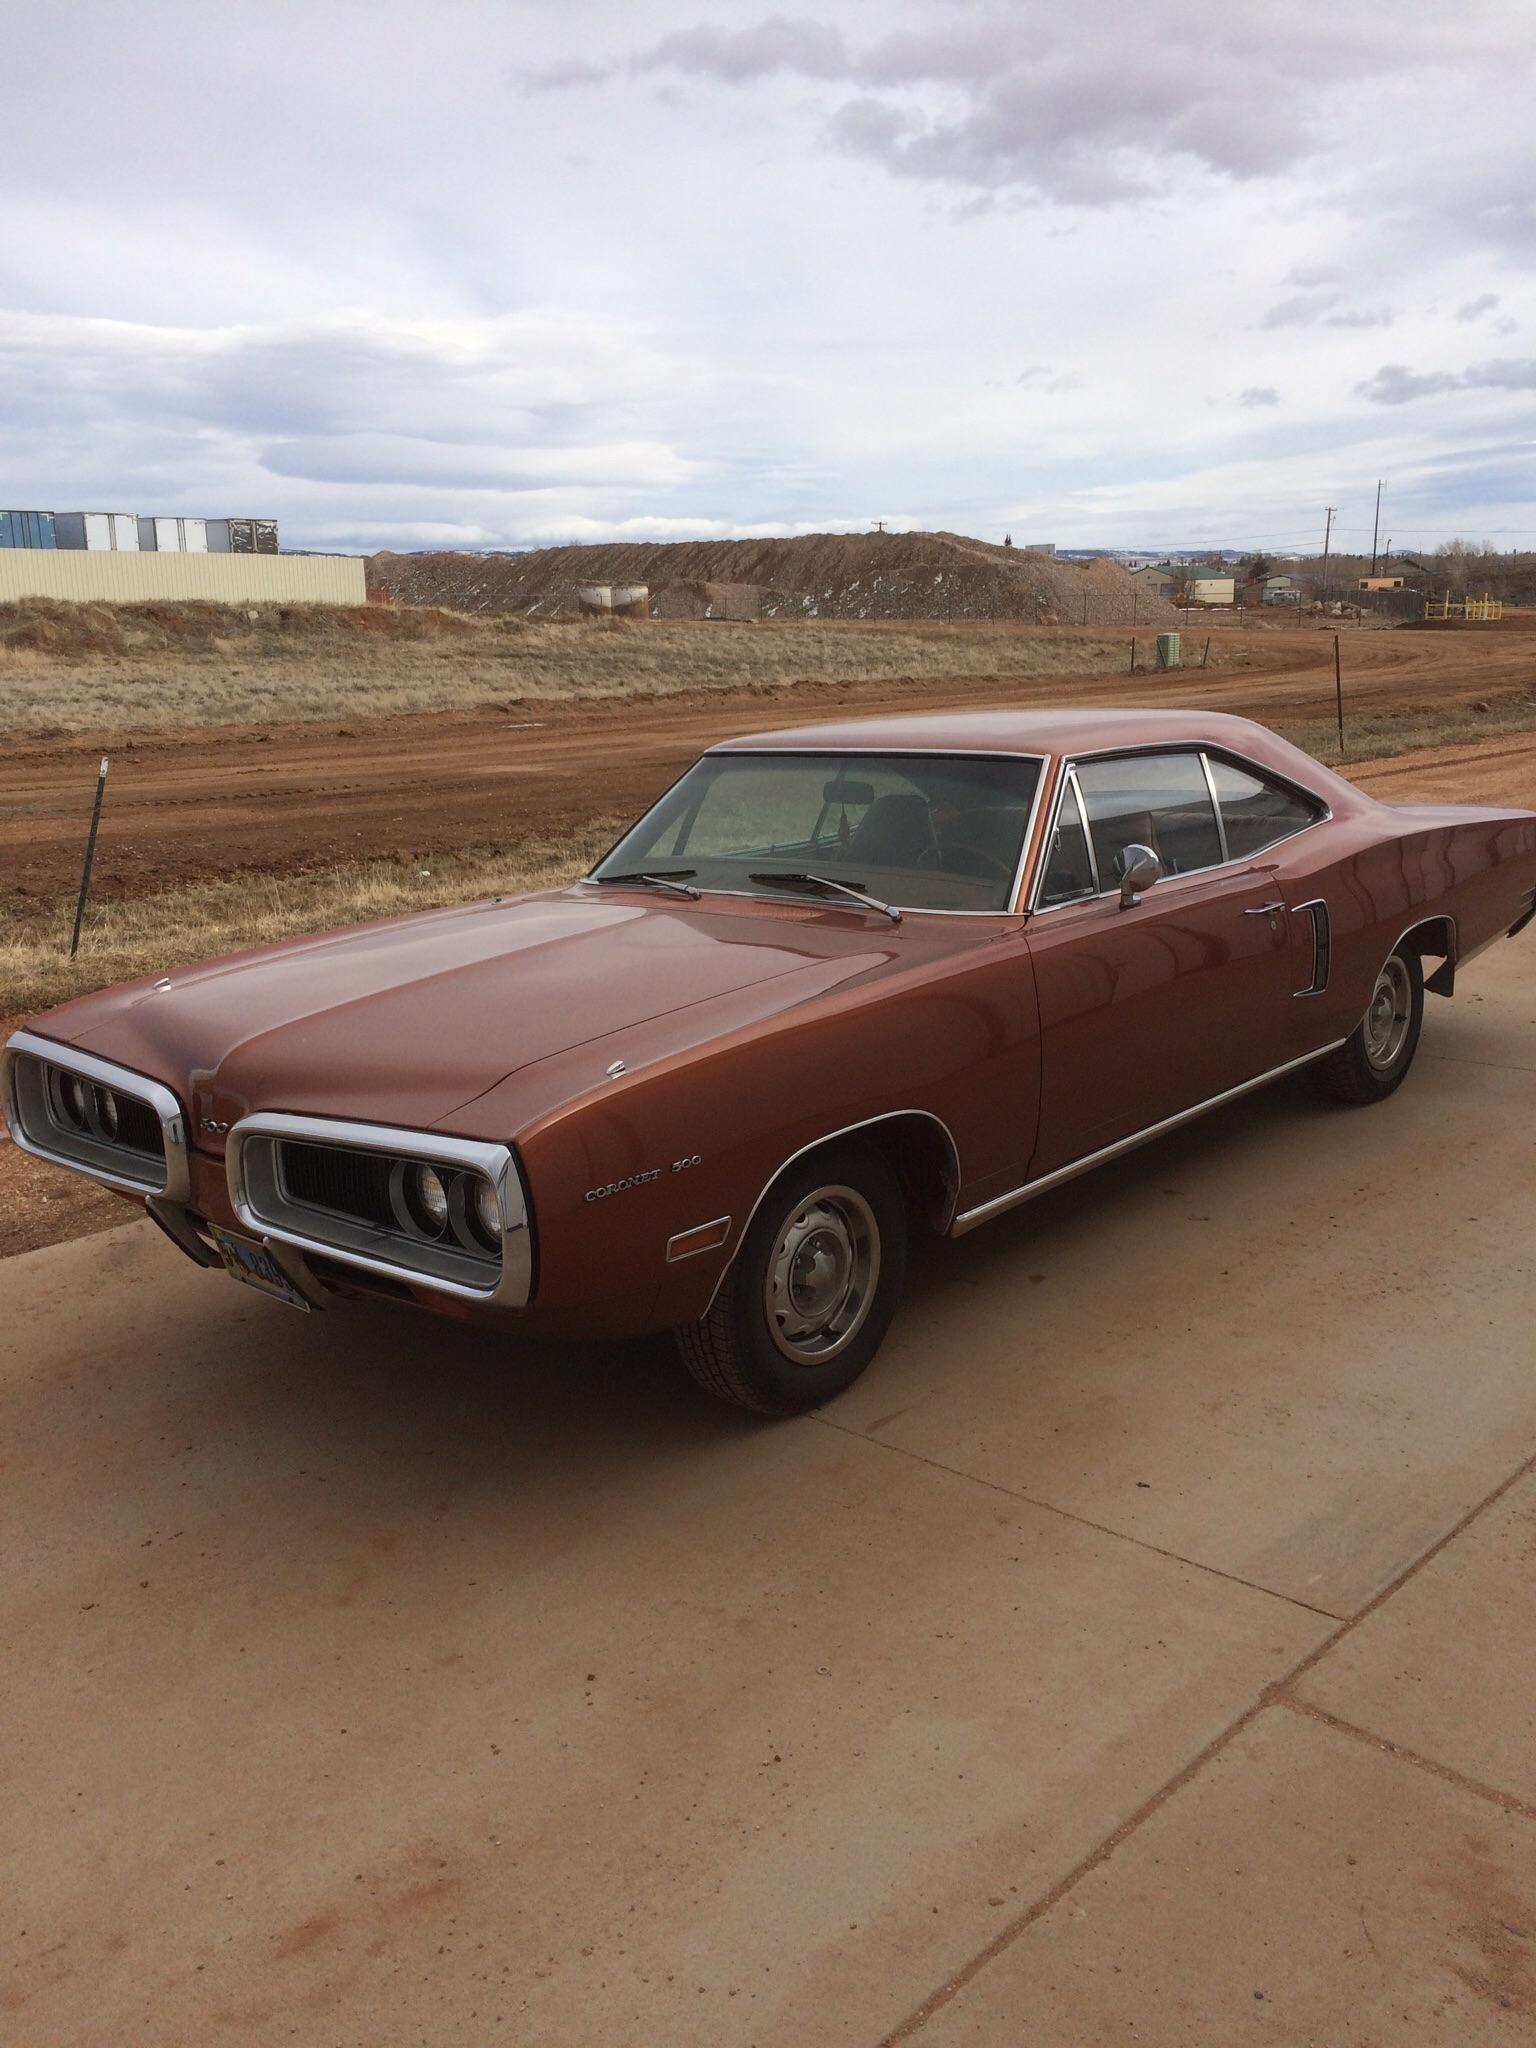 hight resolution of got her out of storage to stretch her legs 70 coronet 500 384 magnum